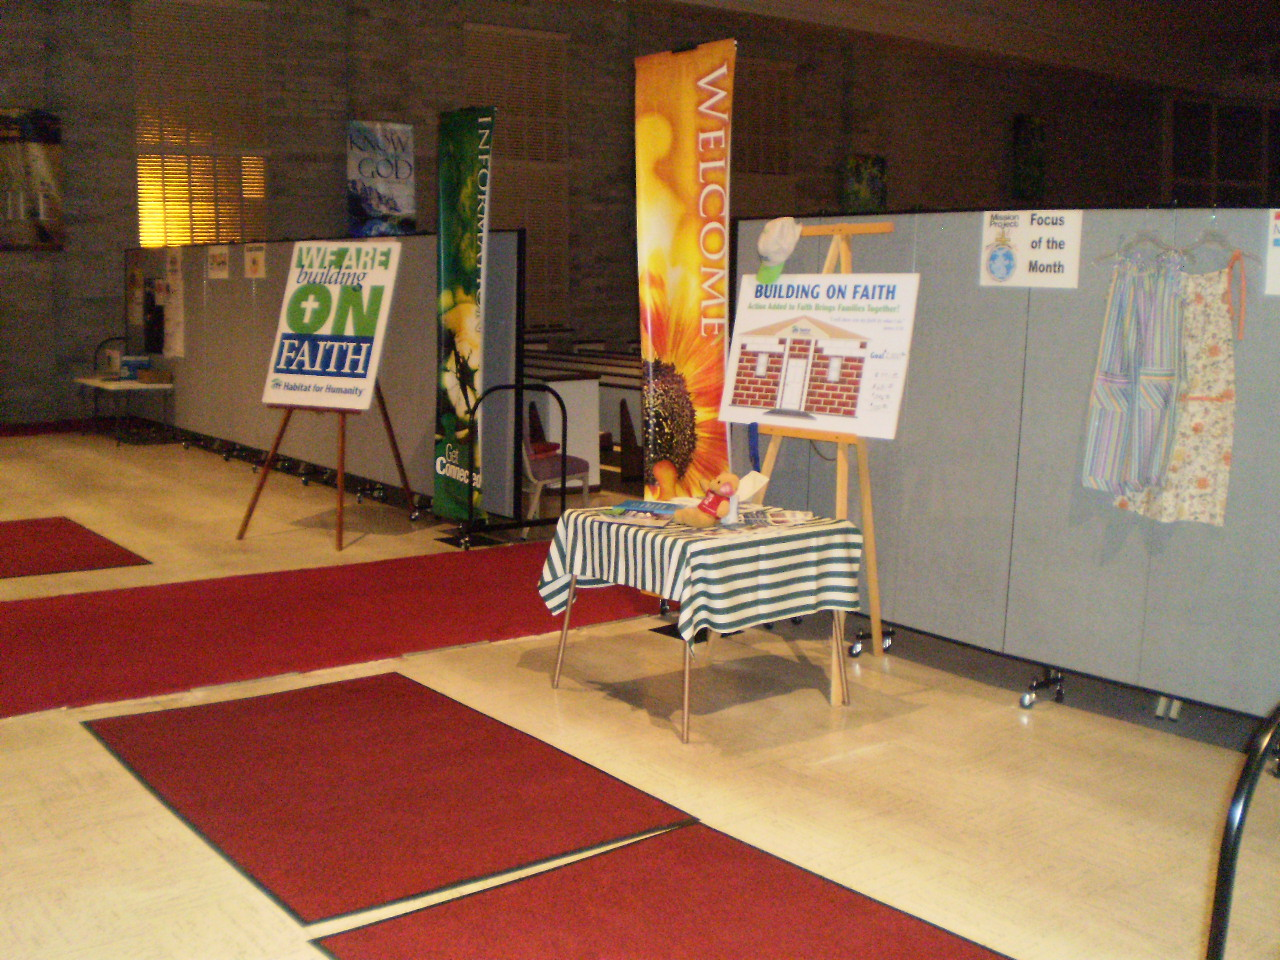 Church flyers and information are displayed on and around room dividers near the rear of a church